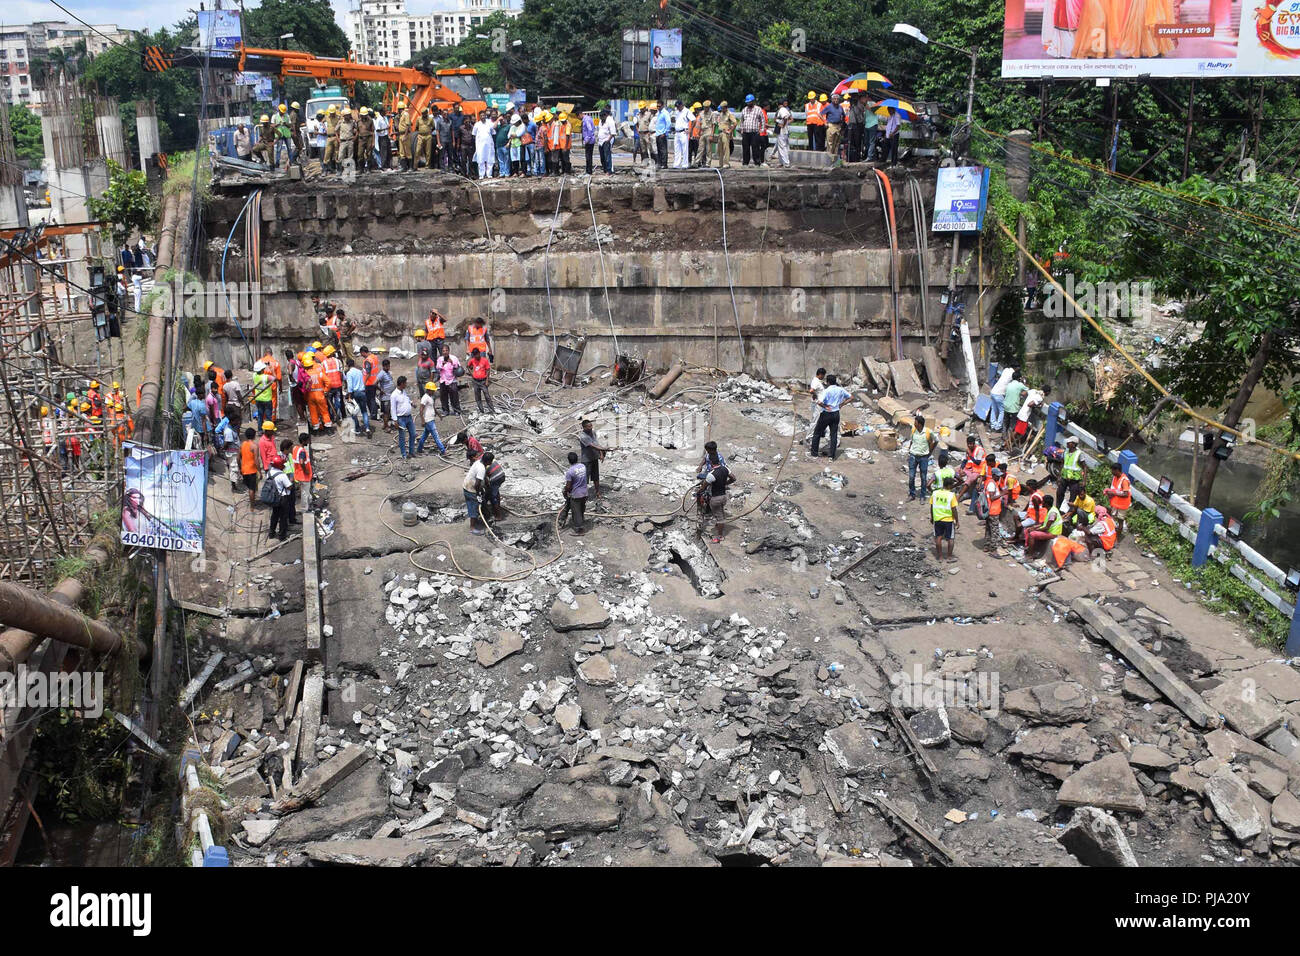 Kolkata, India. 05th Sep, 2018. NDRF, DGM and fire personnel carry out rescue operation after the collapsed of Majherhat bridge. Rescue operation underway after a section of Majerhat Bridge collapsed a day earlier. Credit: Saikat Paul/Pacific Press/Alamy Live News - Stock Image